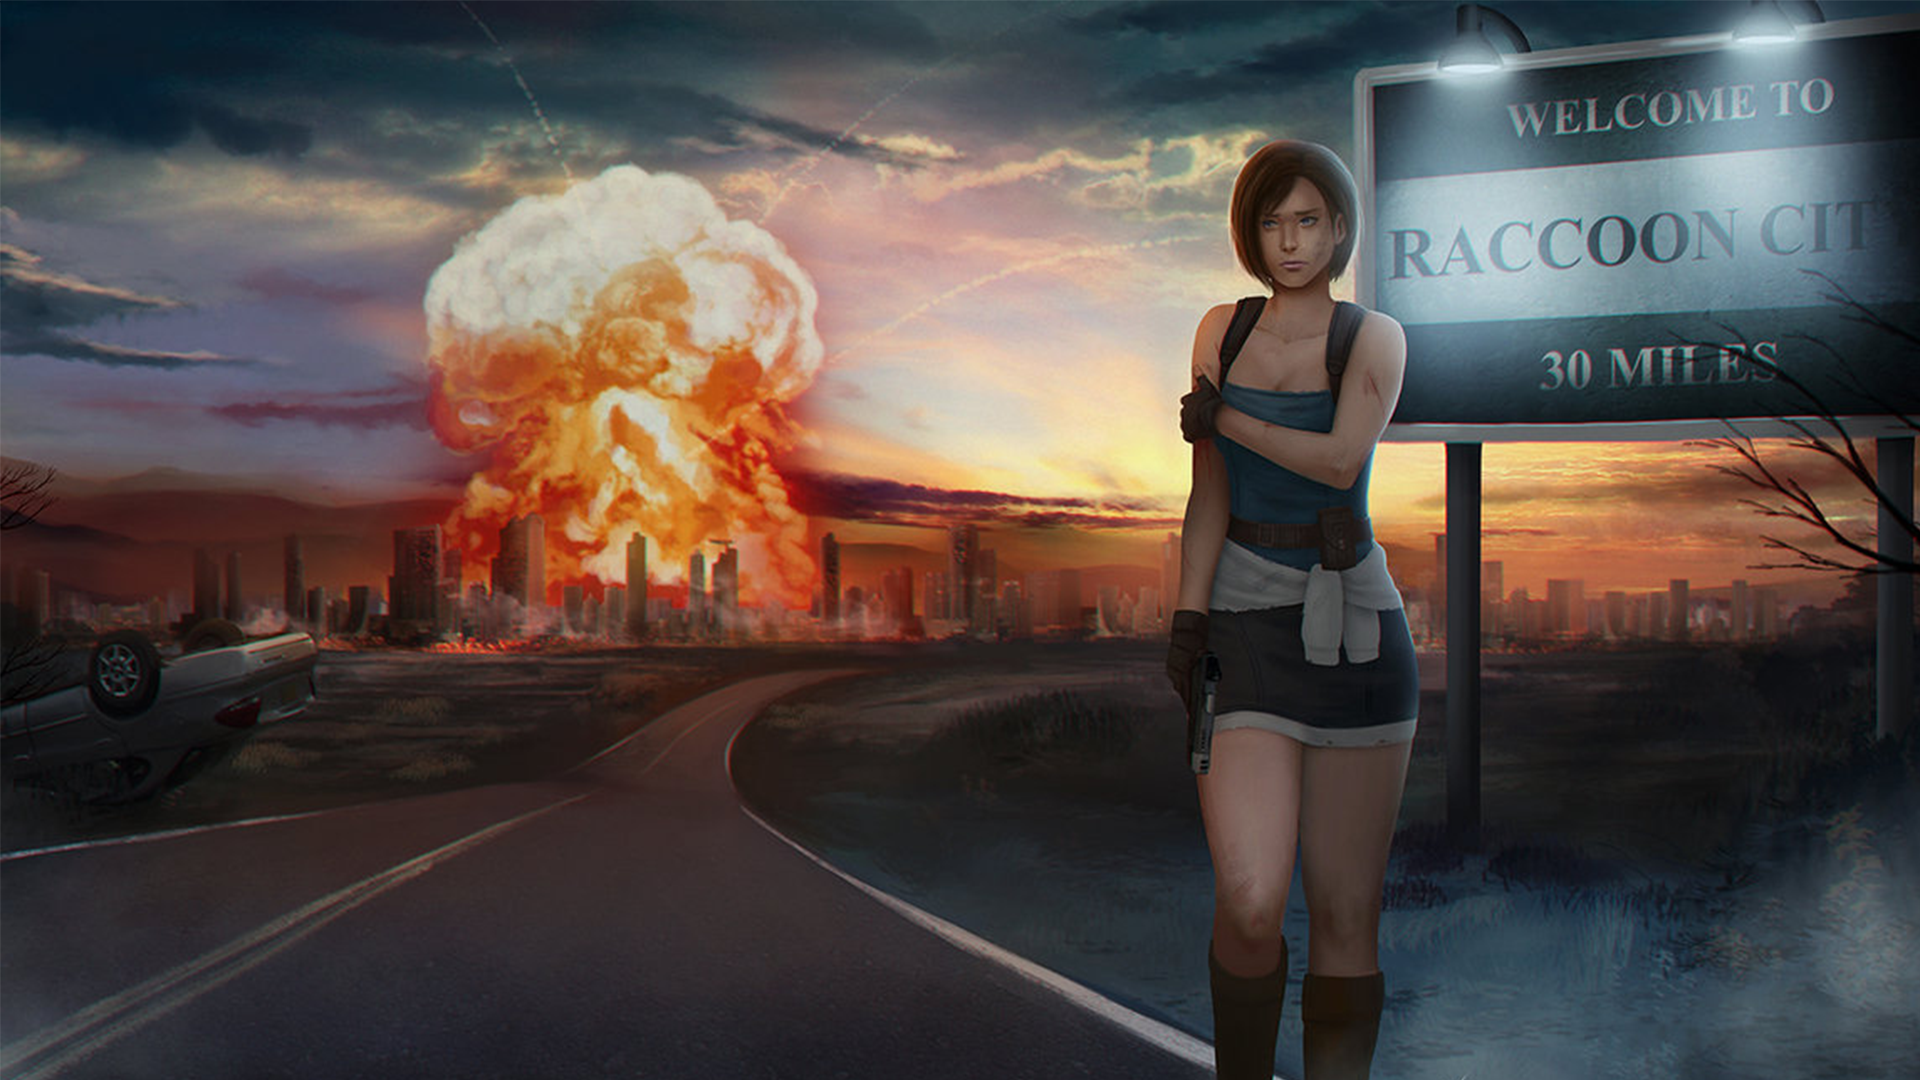 Resident Evil Wallpaper Posted By Michelle Peltier